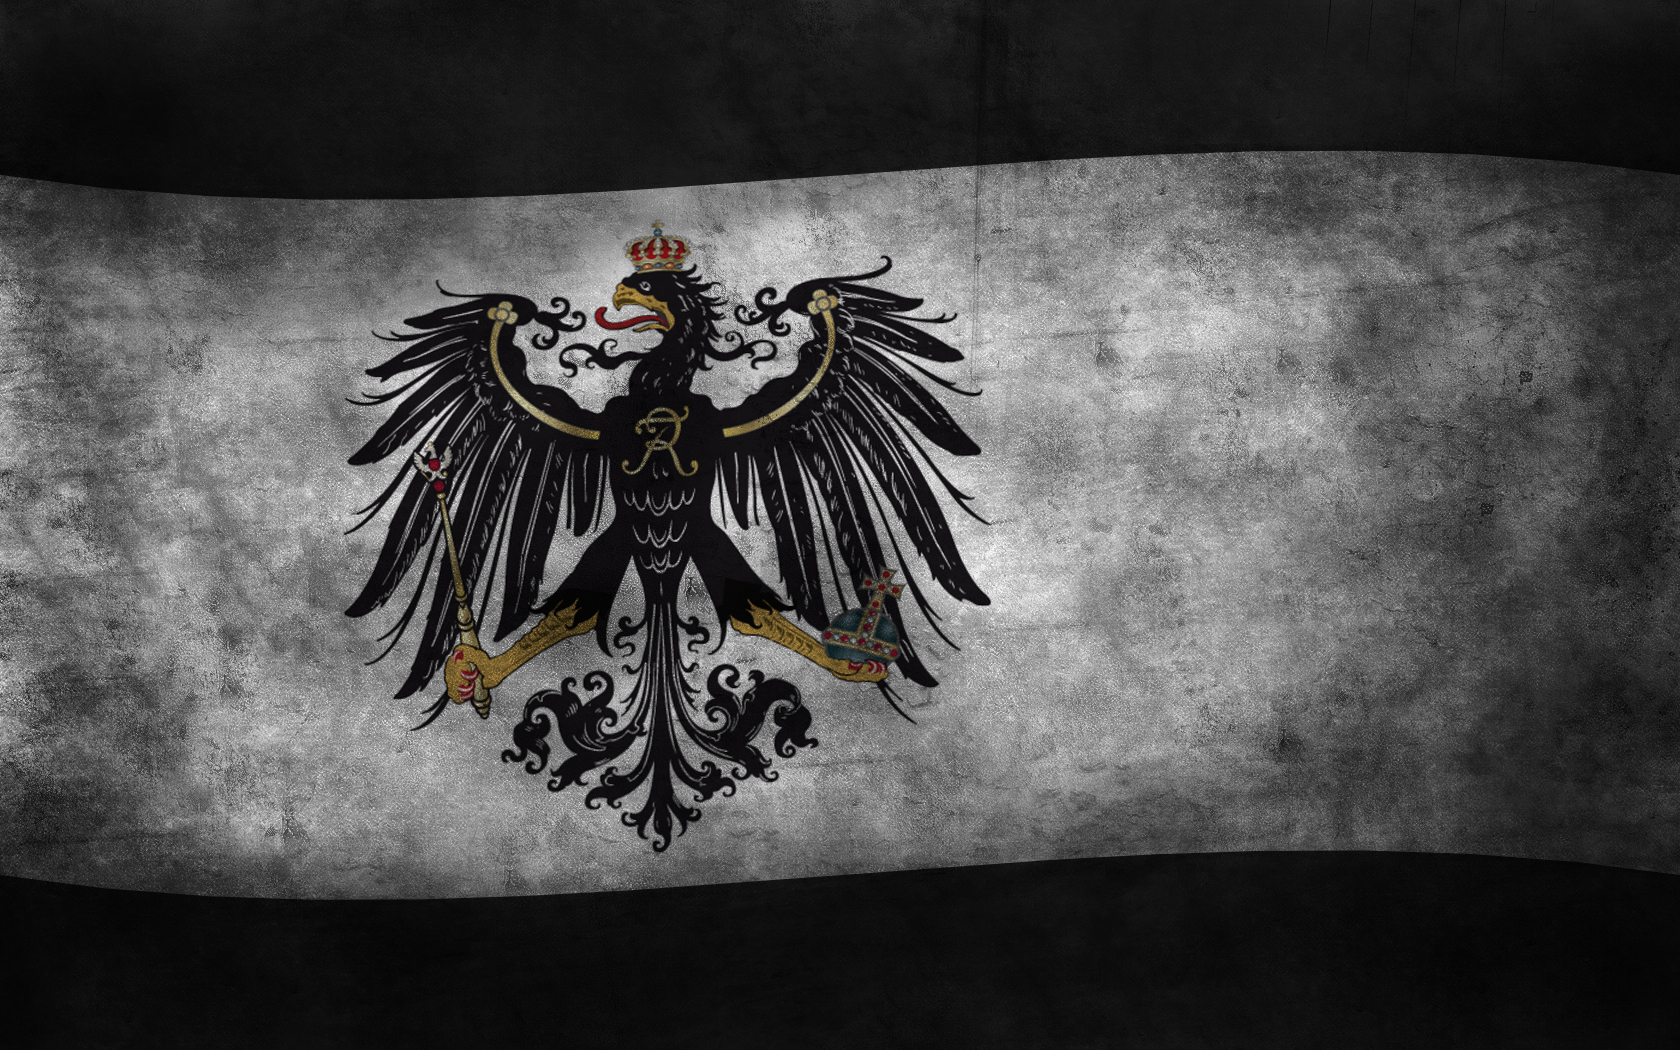 german eagle wallpaper - photo #24